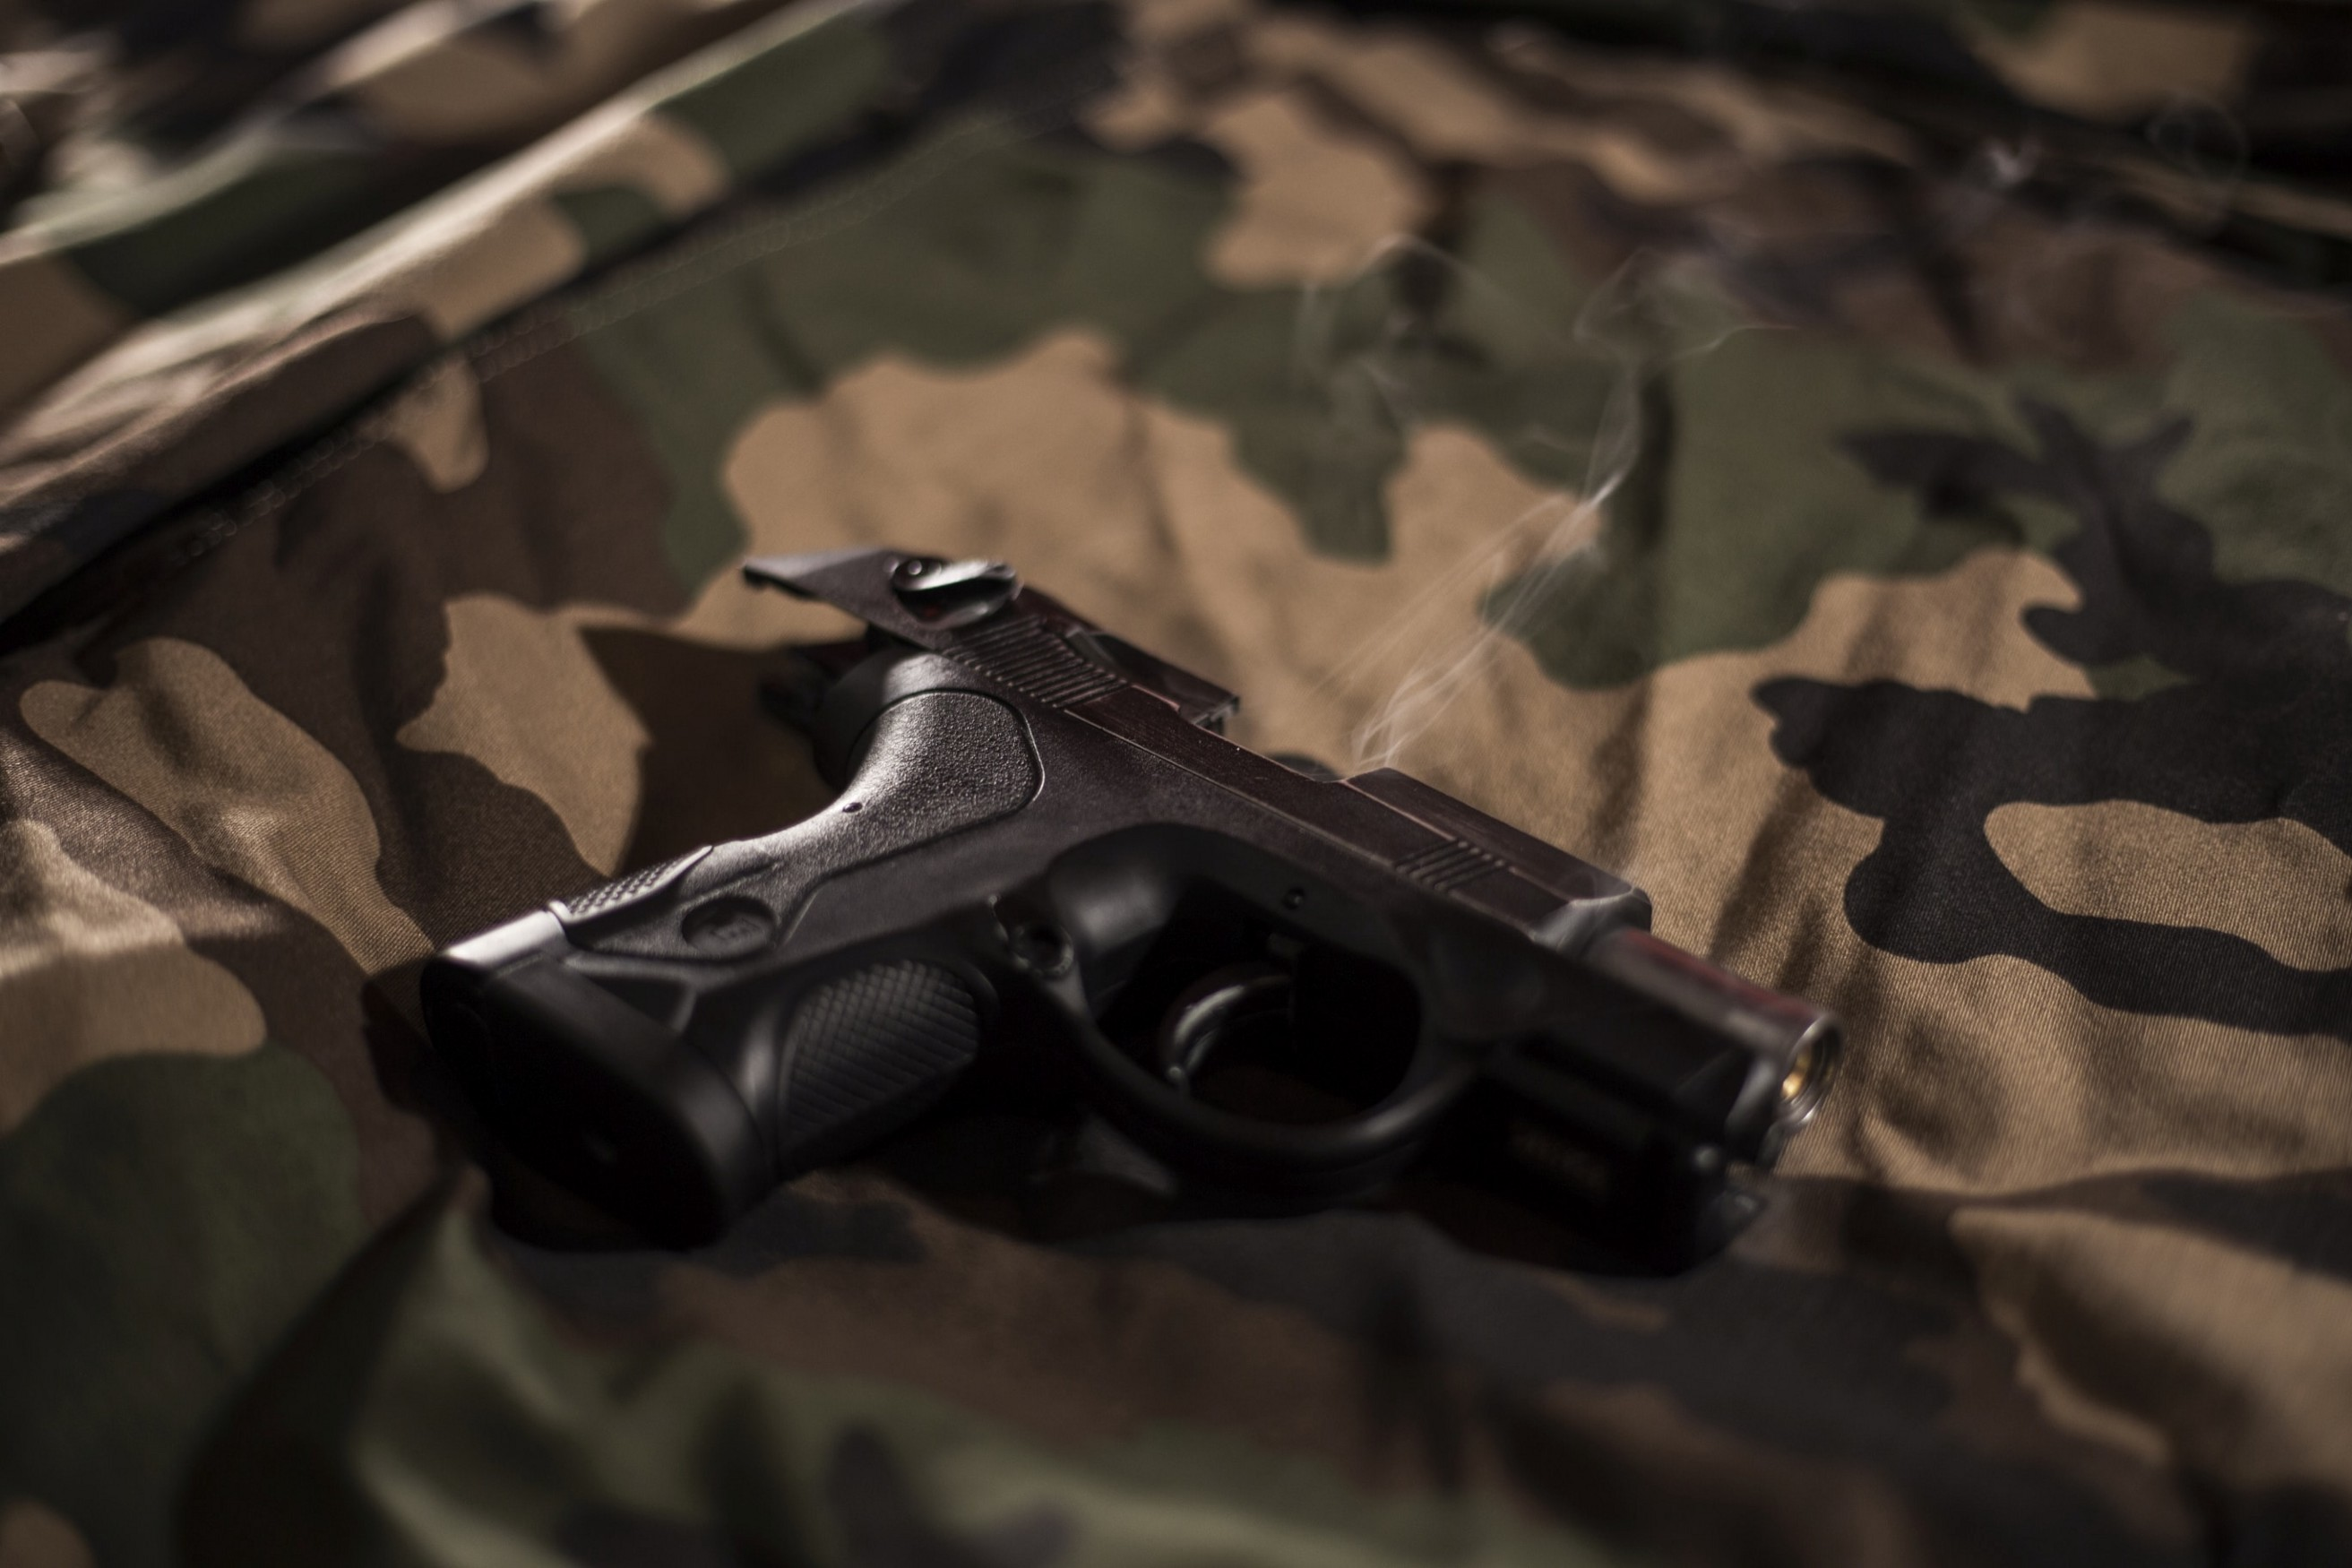 Yes, mental health is relevant when talking about gun violence